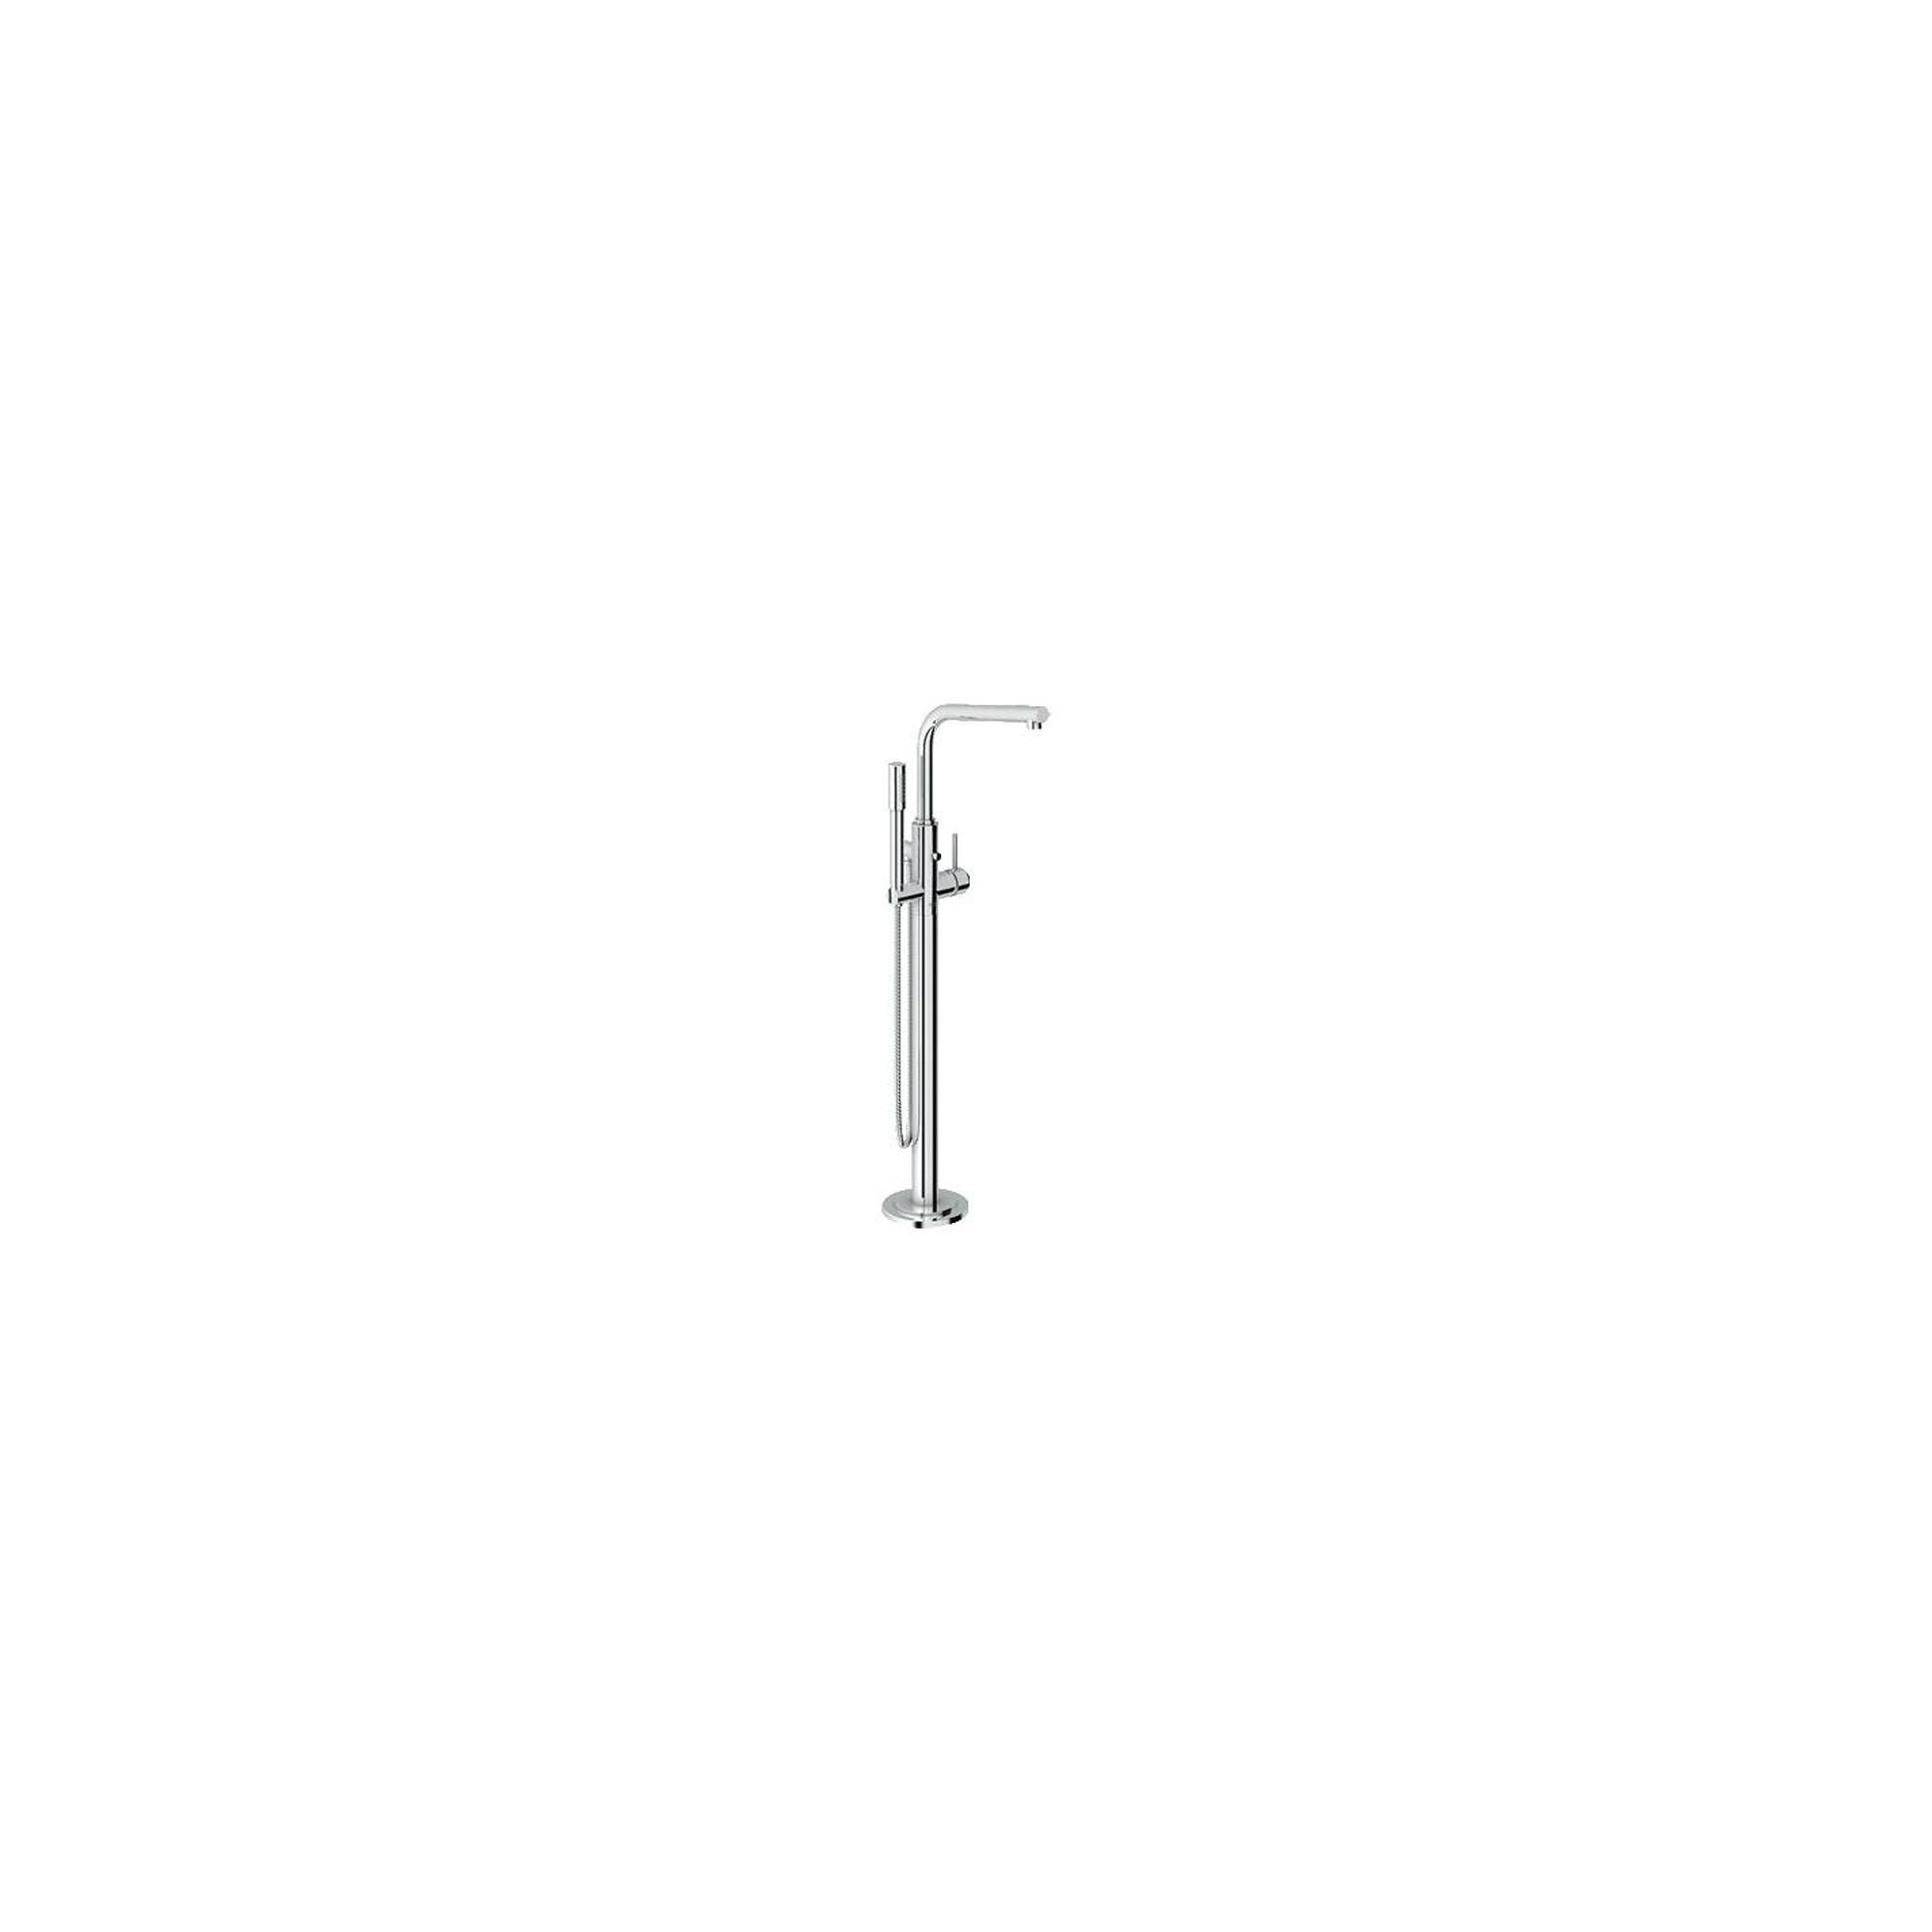 Grohe Atrio One Bath Shower Mixer Tap with L-Spout, Floor Standing, Chrome at Tesco Direct